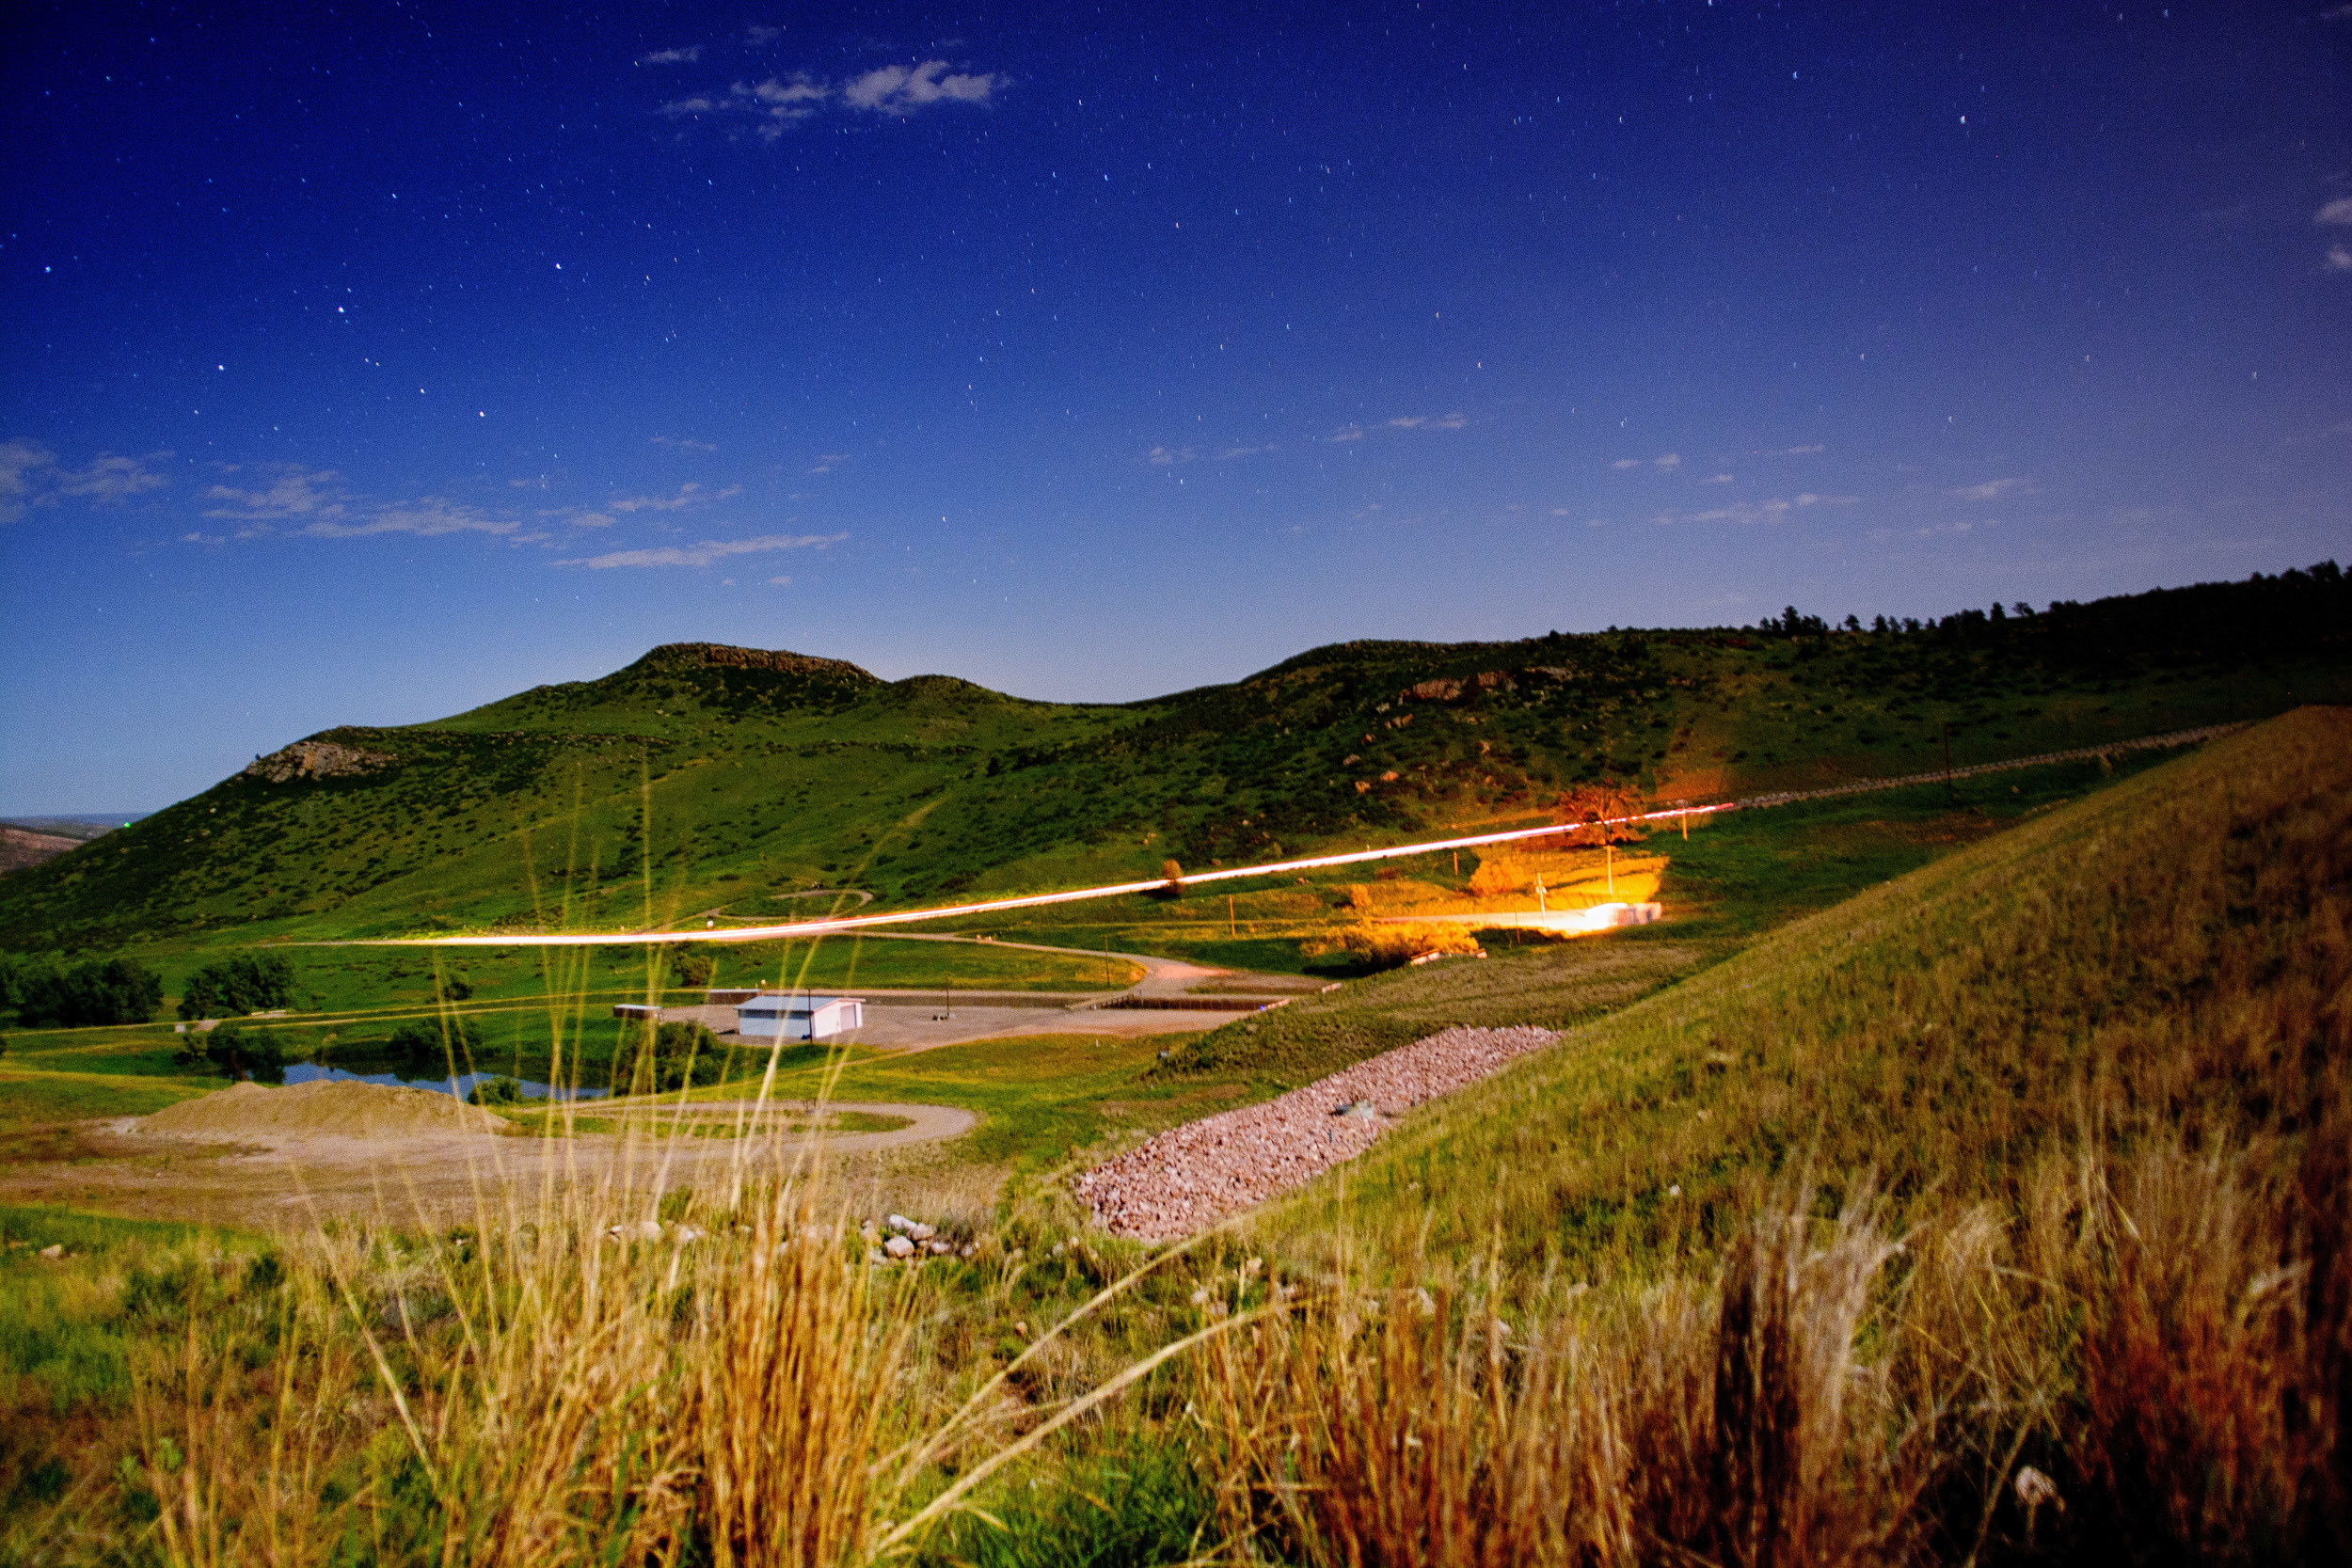 6-15 Photo: Looking back towards Fort Collins, at little night long exposure